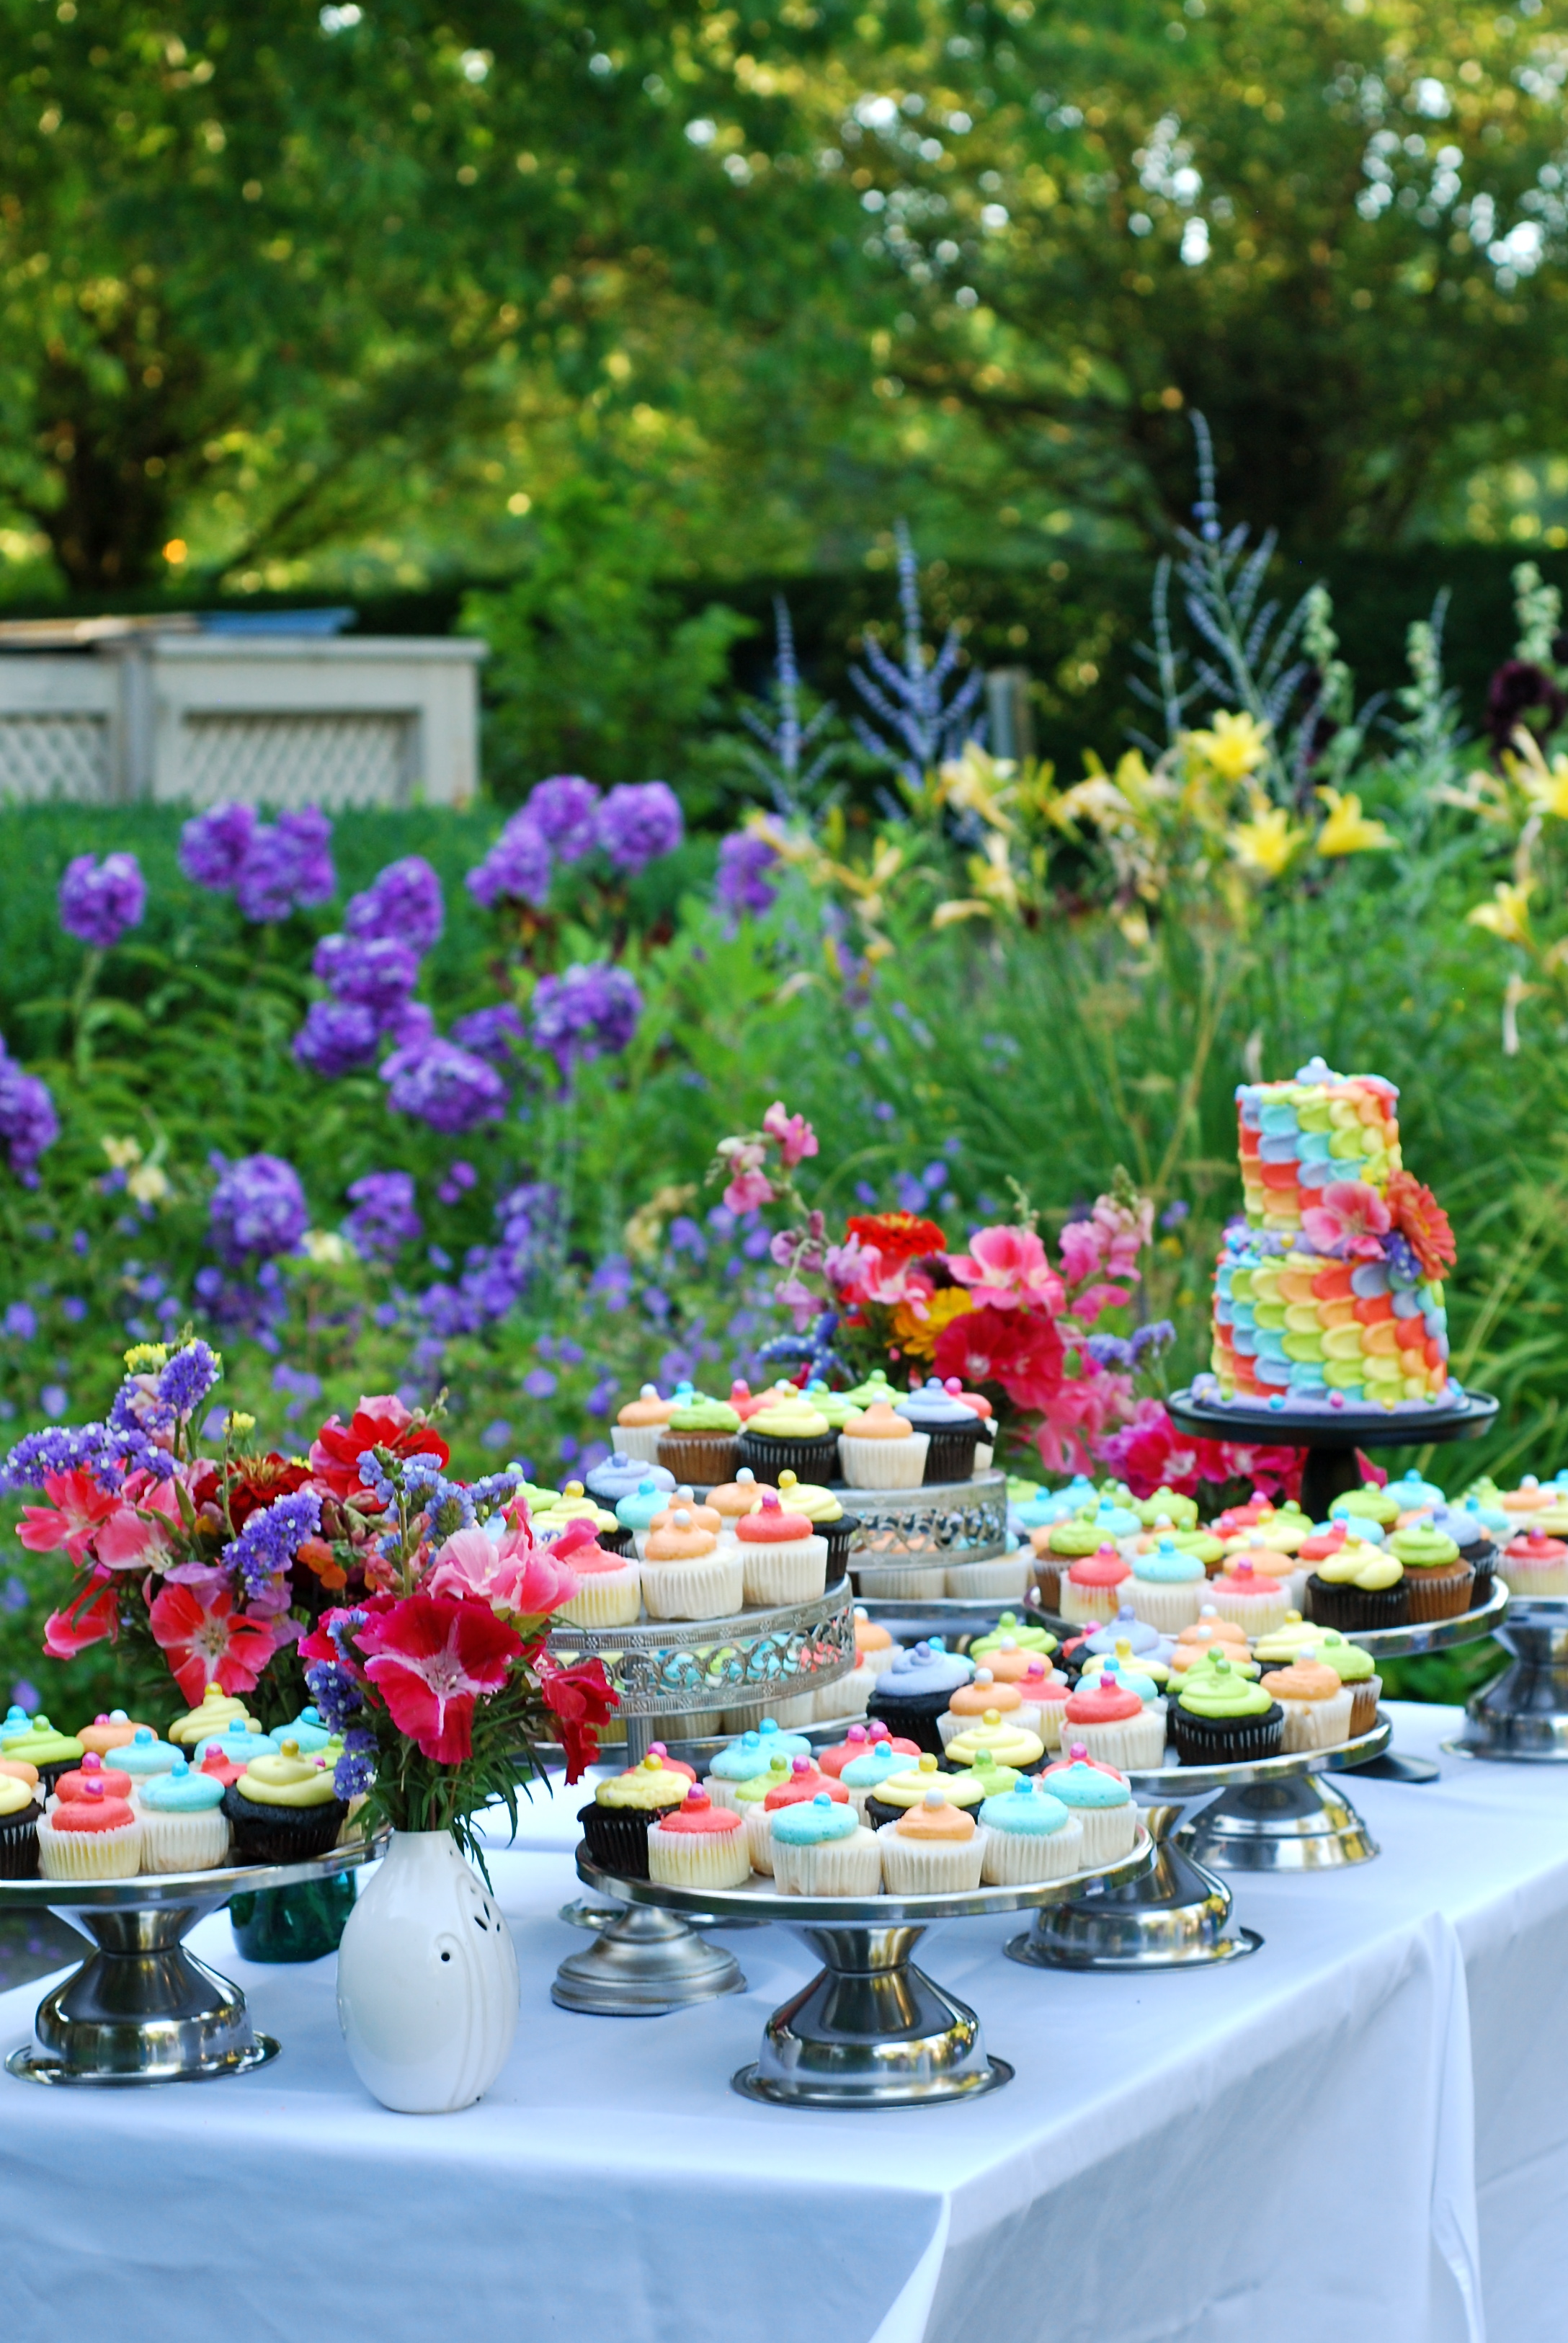 The stunning gardens and grounds of The Grant House were perfect for this celebration.